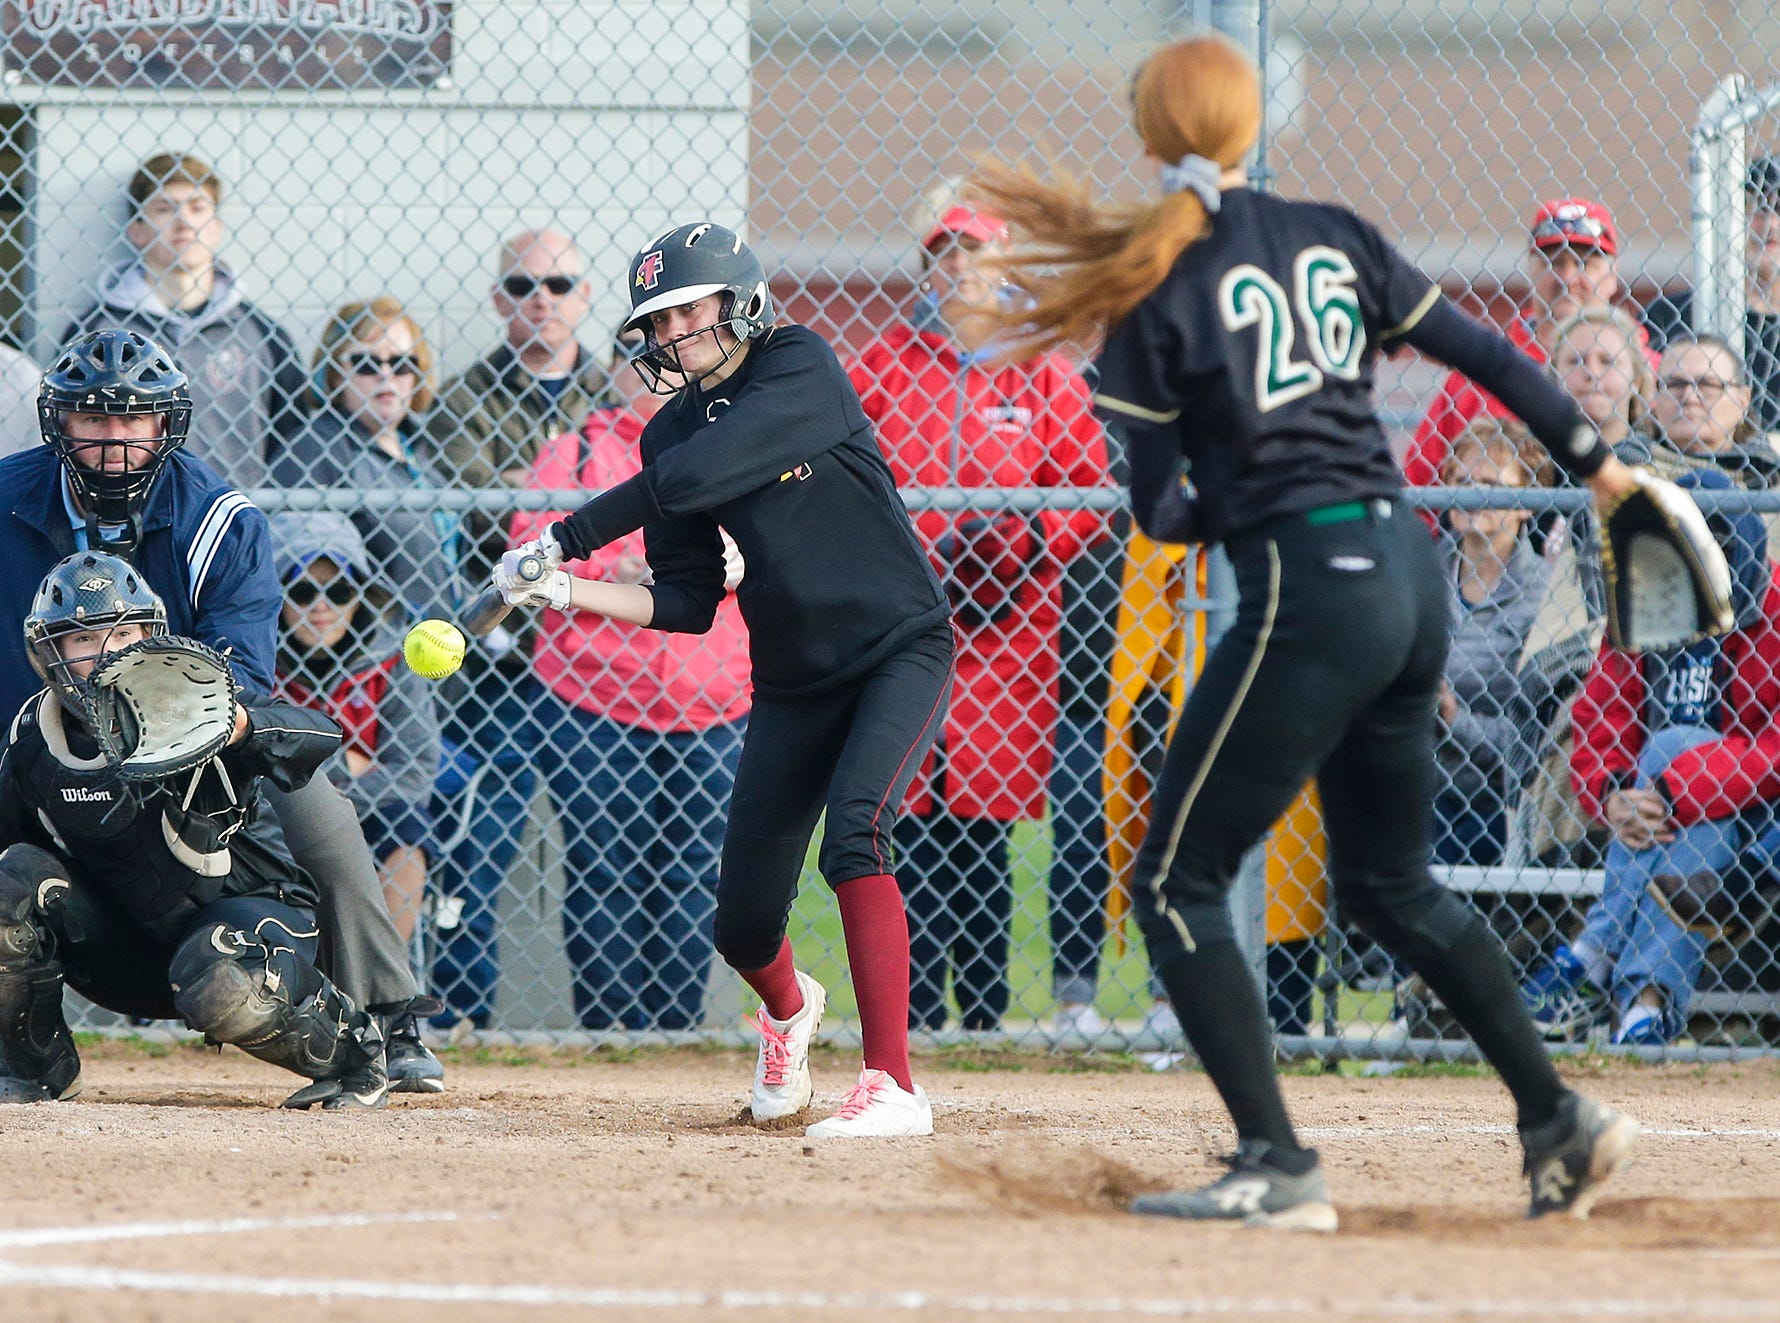 Fond du Lac High School softball's Nyah Odekirk swings at a pitch against Oshkosh West High School during their game Friday, April 26, 2019 in Fond du Lac, Wis. Doug Raflik/USA TODAY NETWORK-Wisconsin